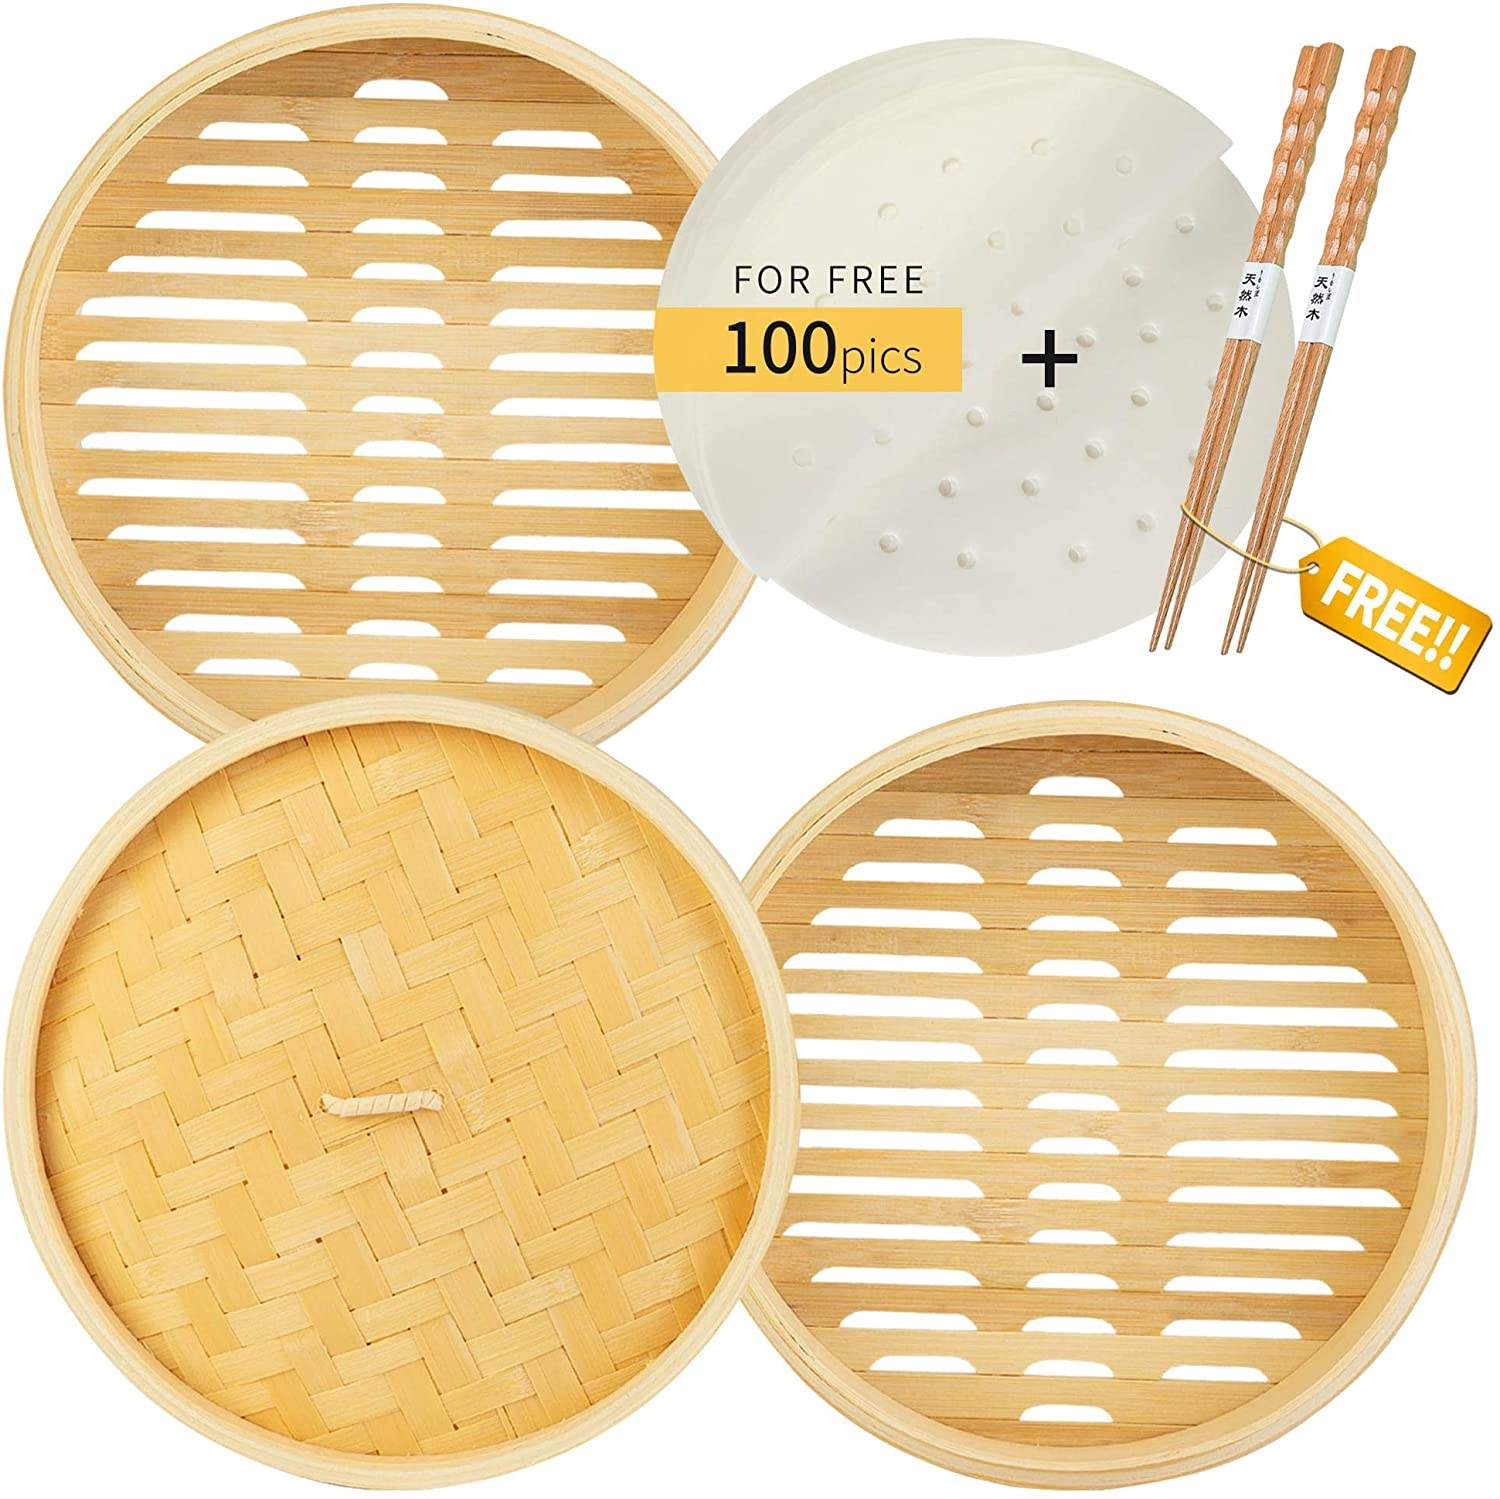 Natural Bamboo Steamer Basket 10 inch, 2 Tier Baskets & Lid, Healthy Cooking for Vegetables